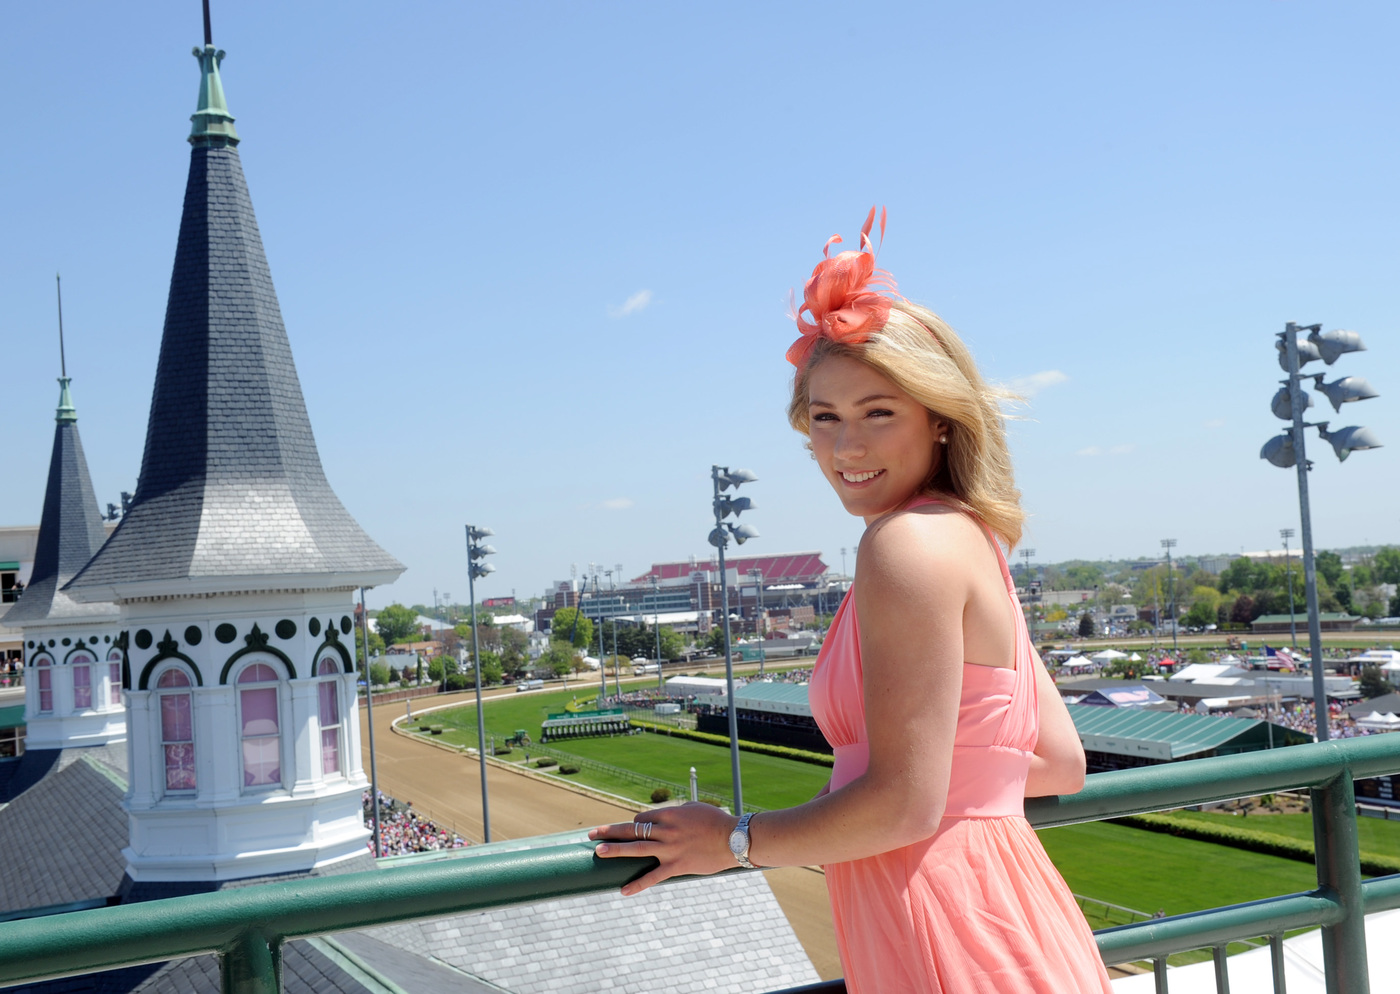 Longines Flat Racing Event: The 141st Longines Kentucky Oaks with Mikaela Shiffrin 6